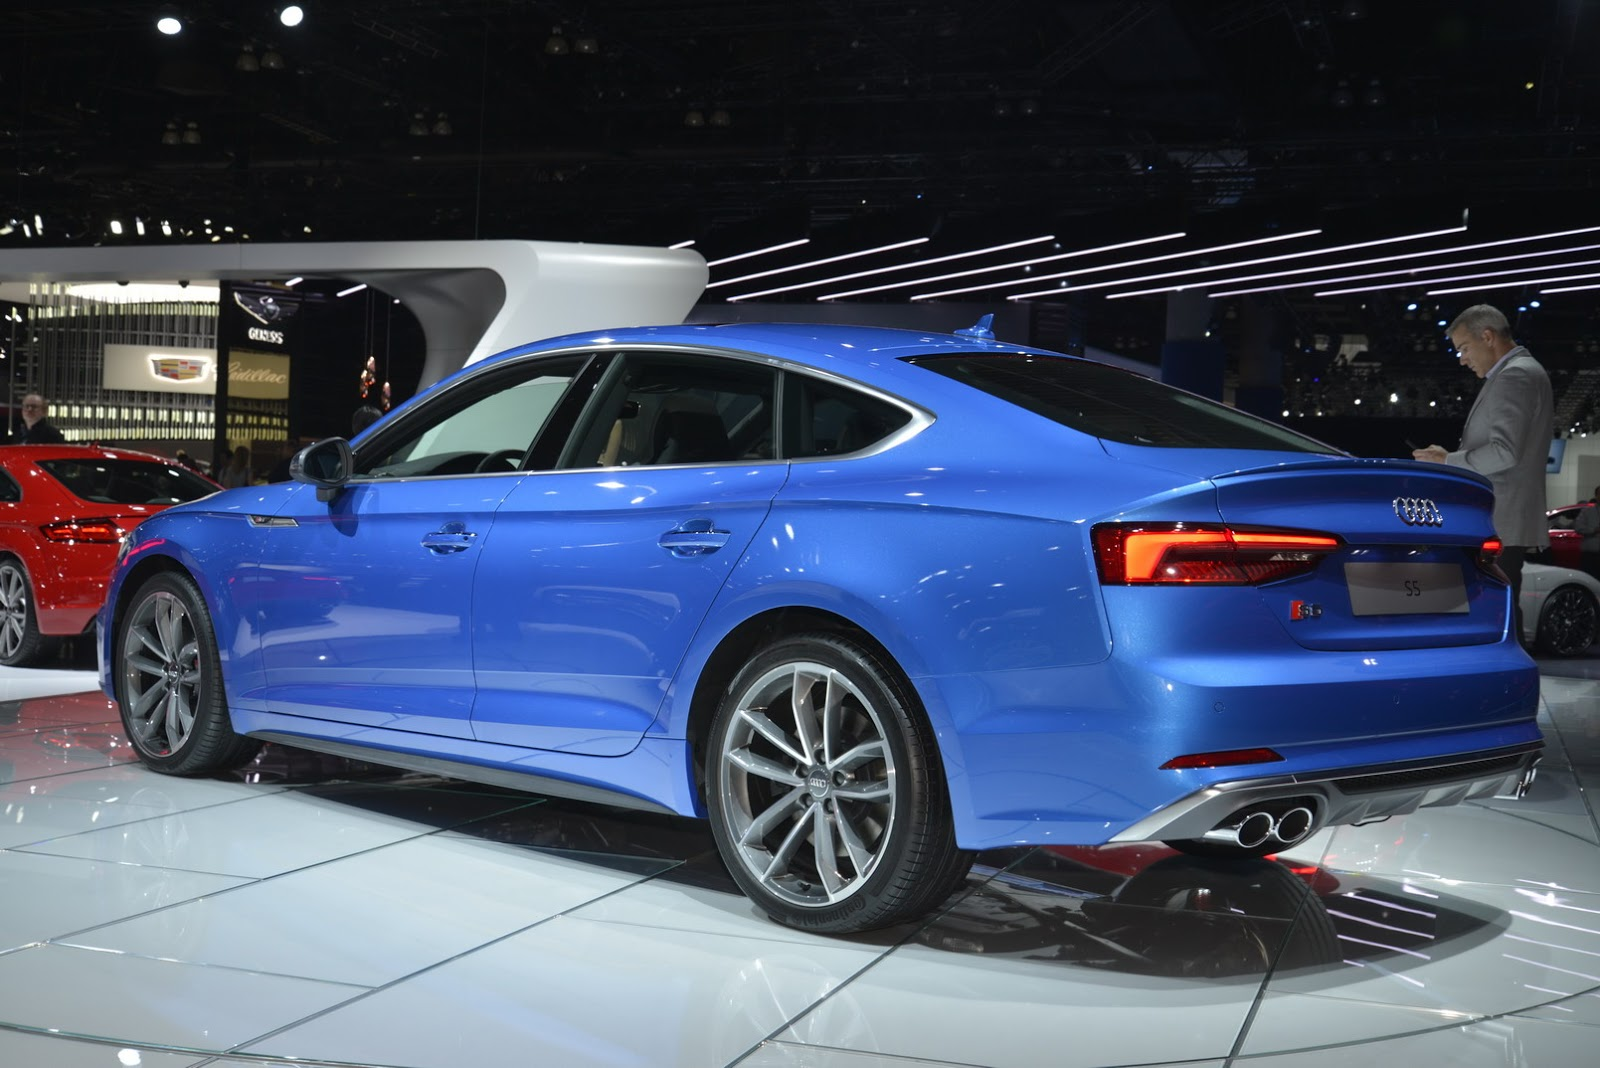 Le Meilleur You Can Now Have An Audi A5 Or S5 With Five Doors In Ce Mois Ci